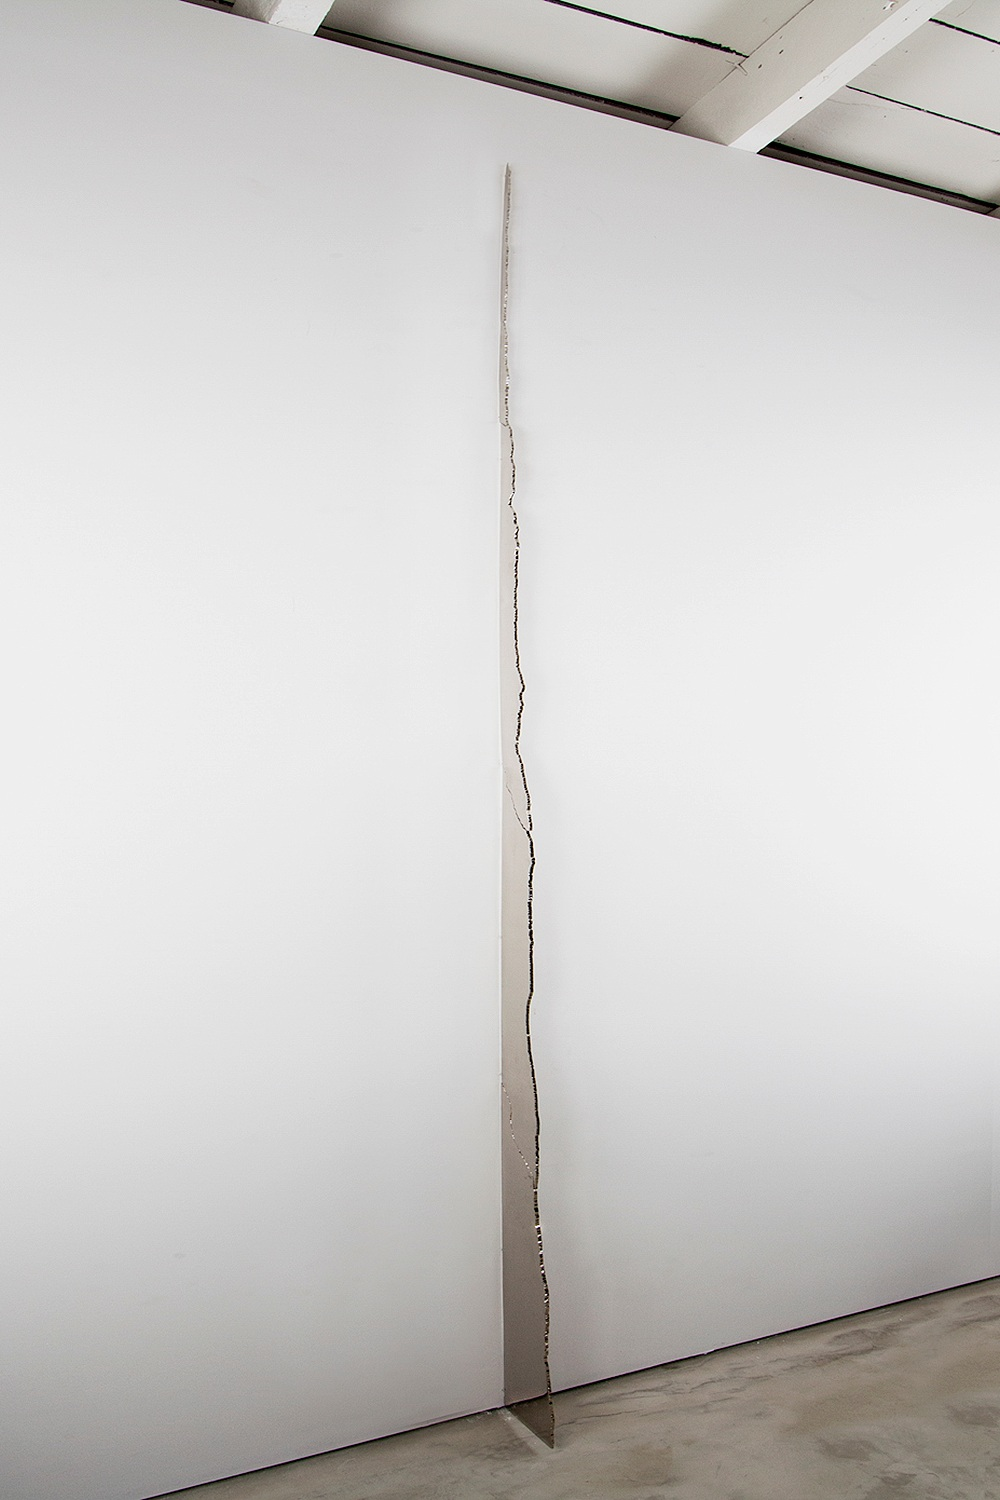 Band, 2013. Nickel plated and mirror polished steel, 120 x 10 x .25 inches -